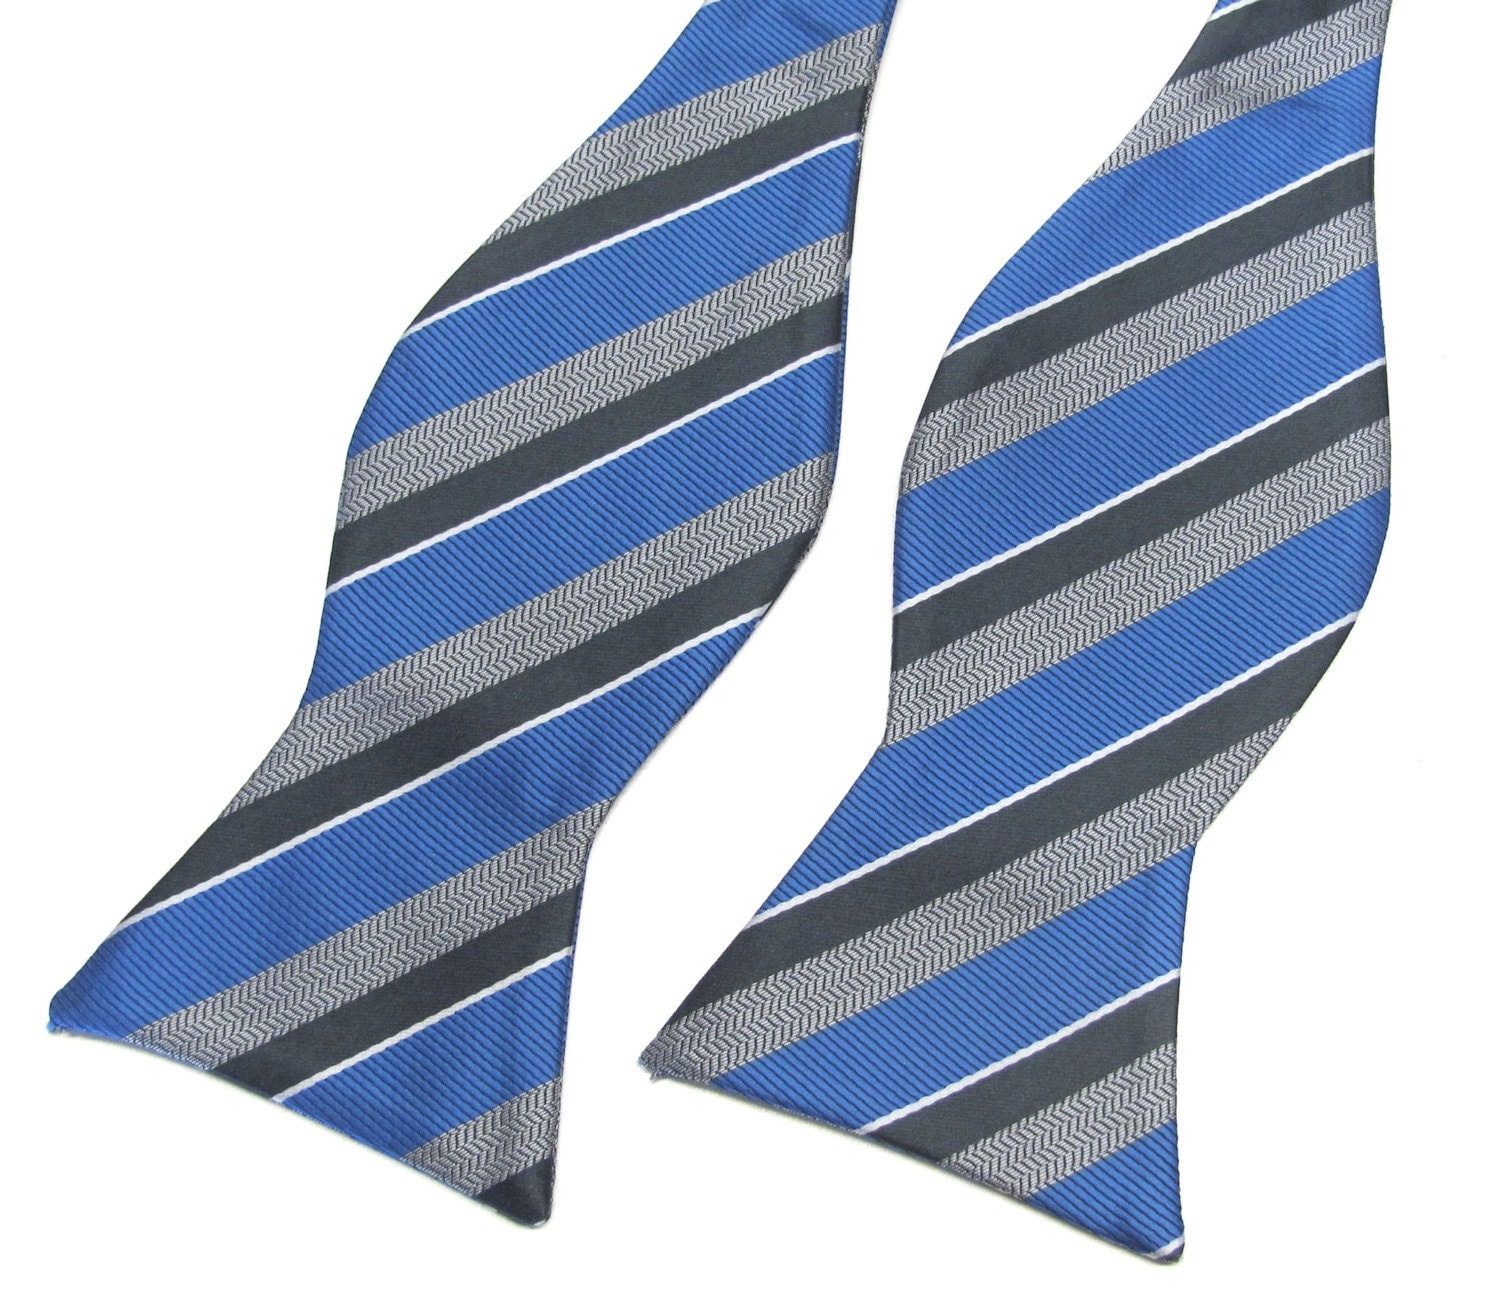 Find great deals on Mens Bow Tie Ties at Kohl's today! Sponsored Links Outside companies pay to advertise via these links when specific phrases and words are searched.